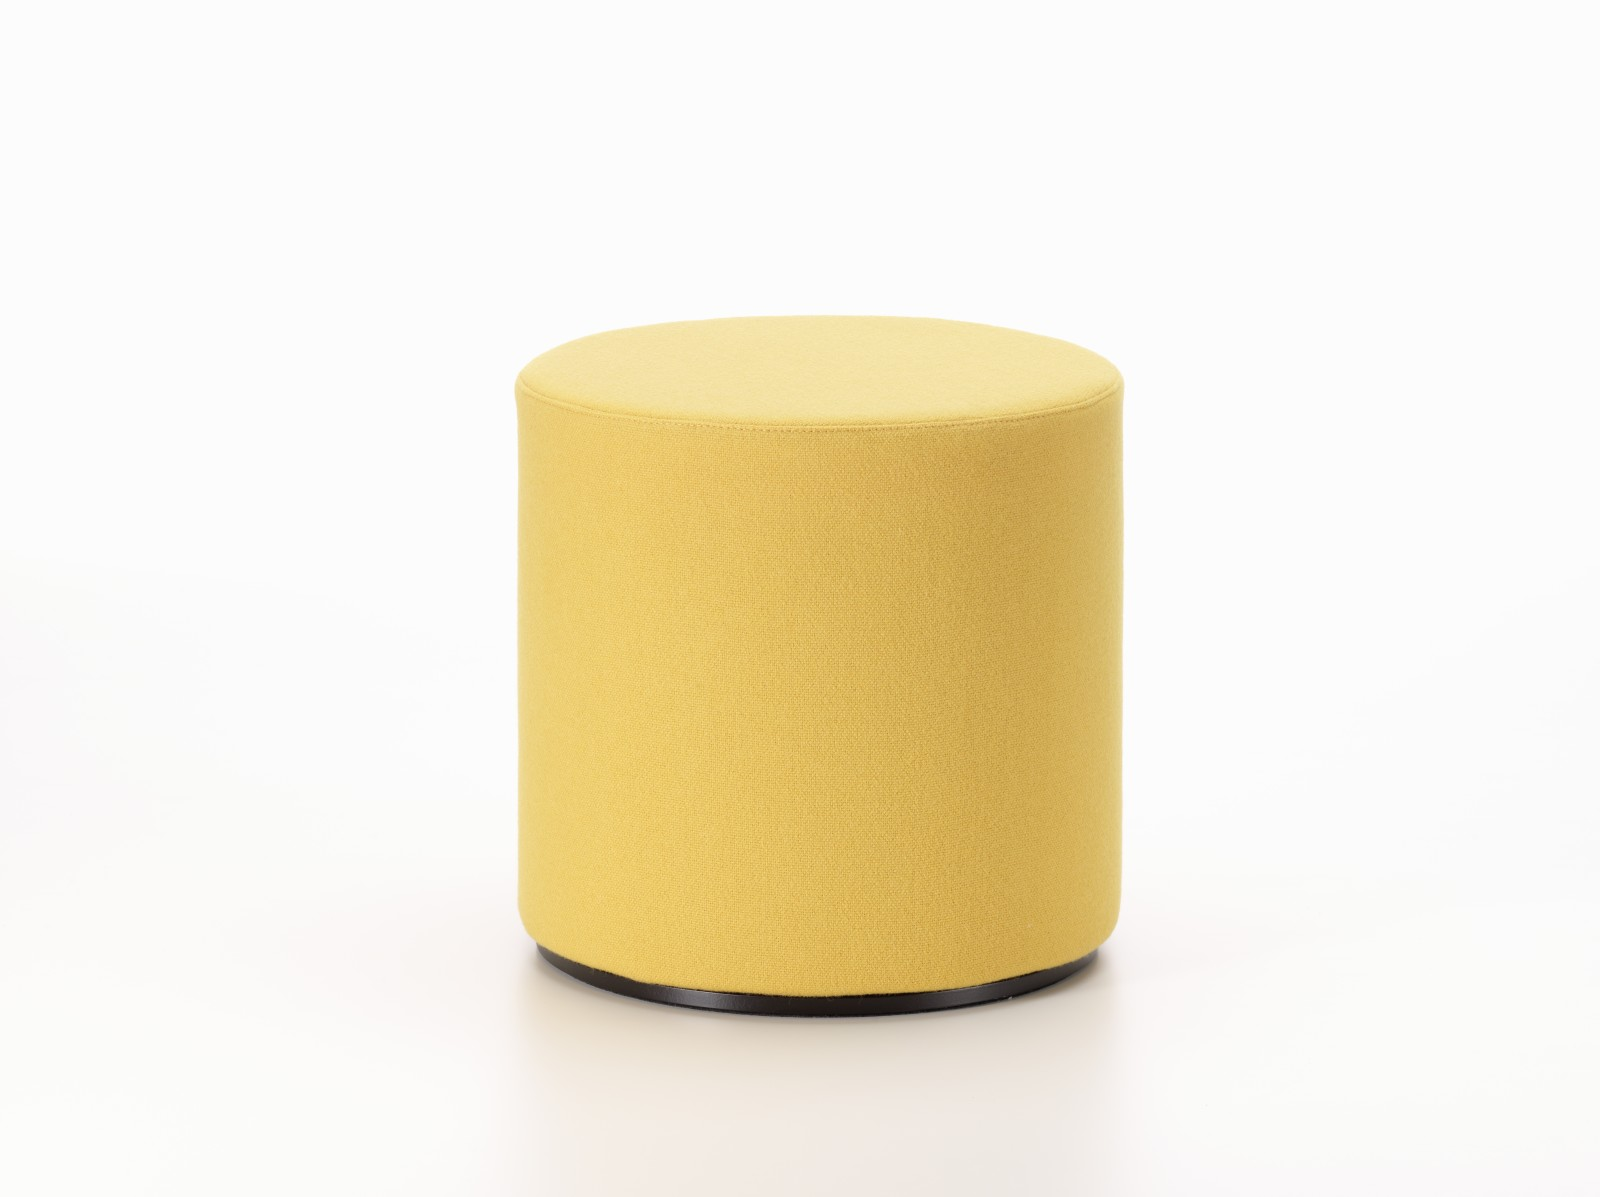 Visiona Stool Hopsak 71 yellow/pastel green